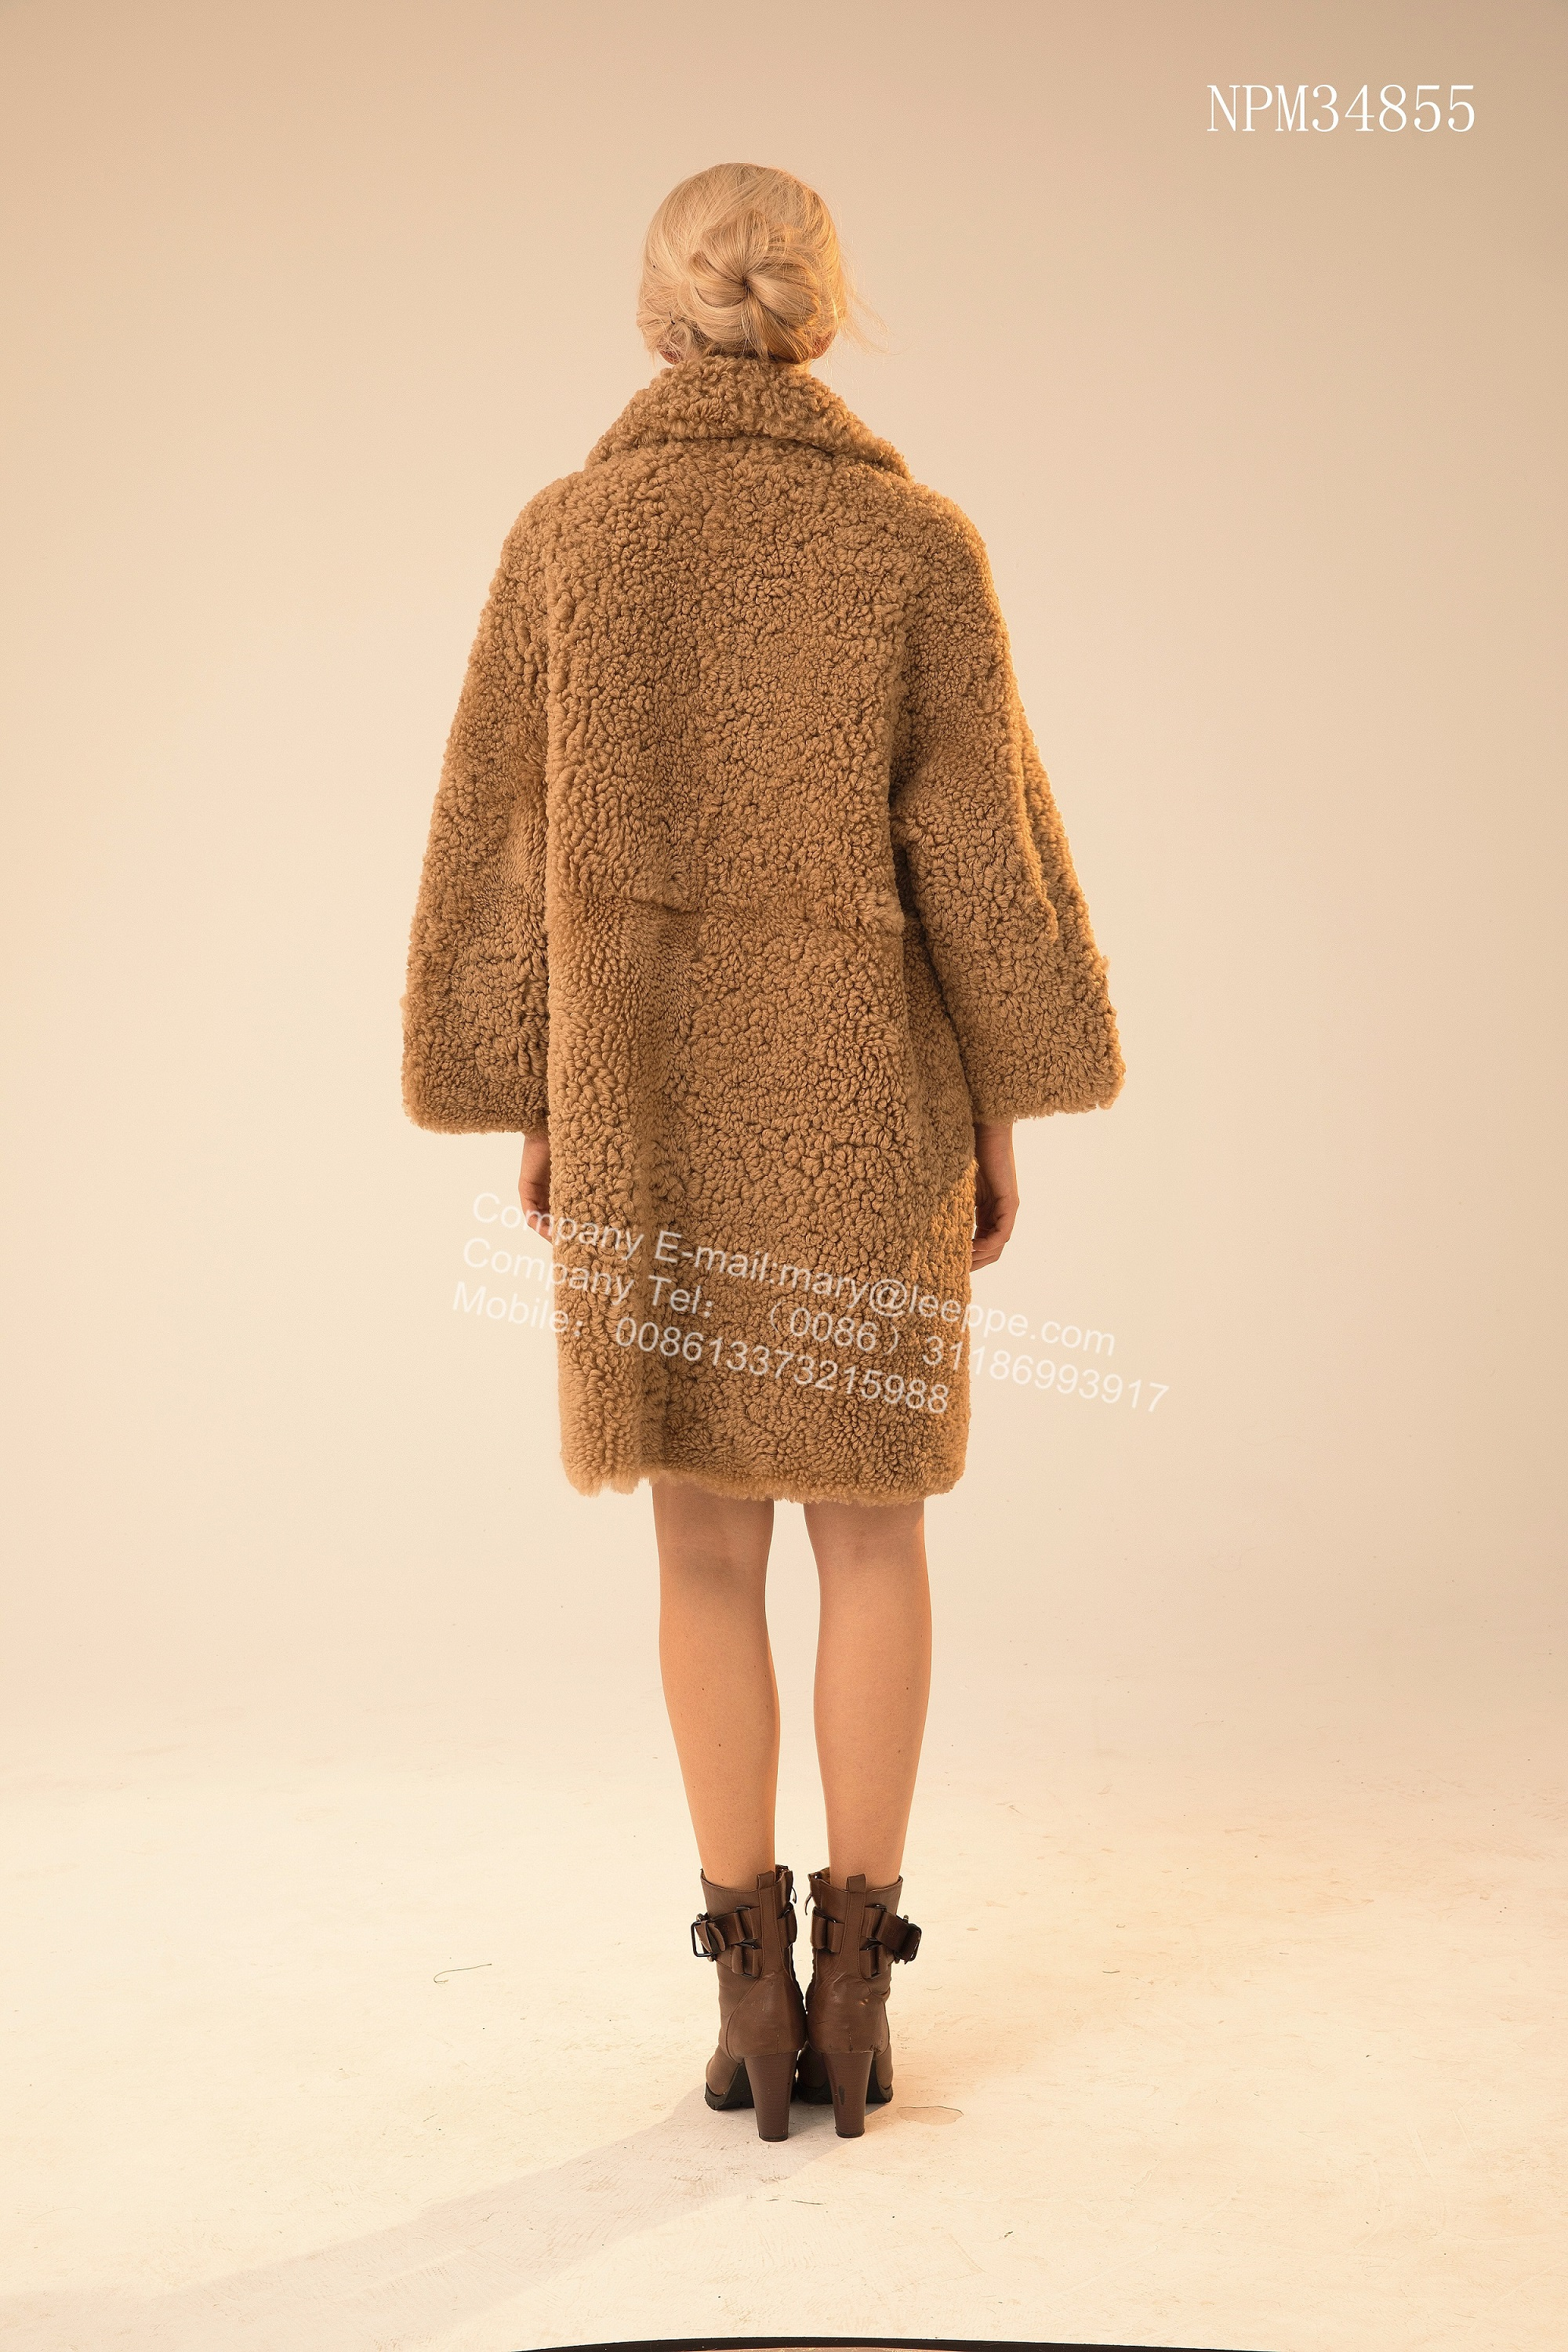 Australian Merino Shearling Fur Outward Coat